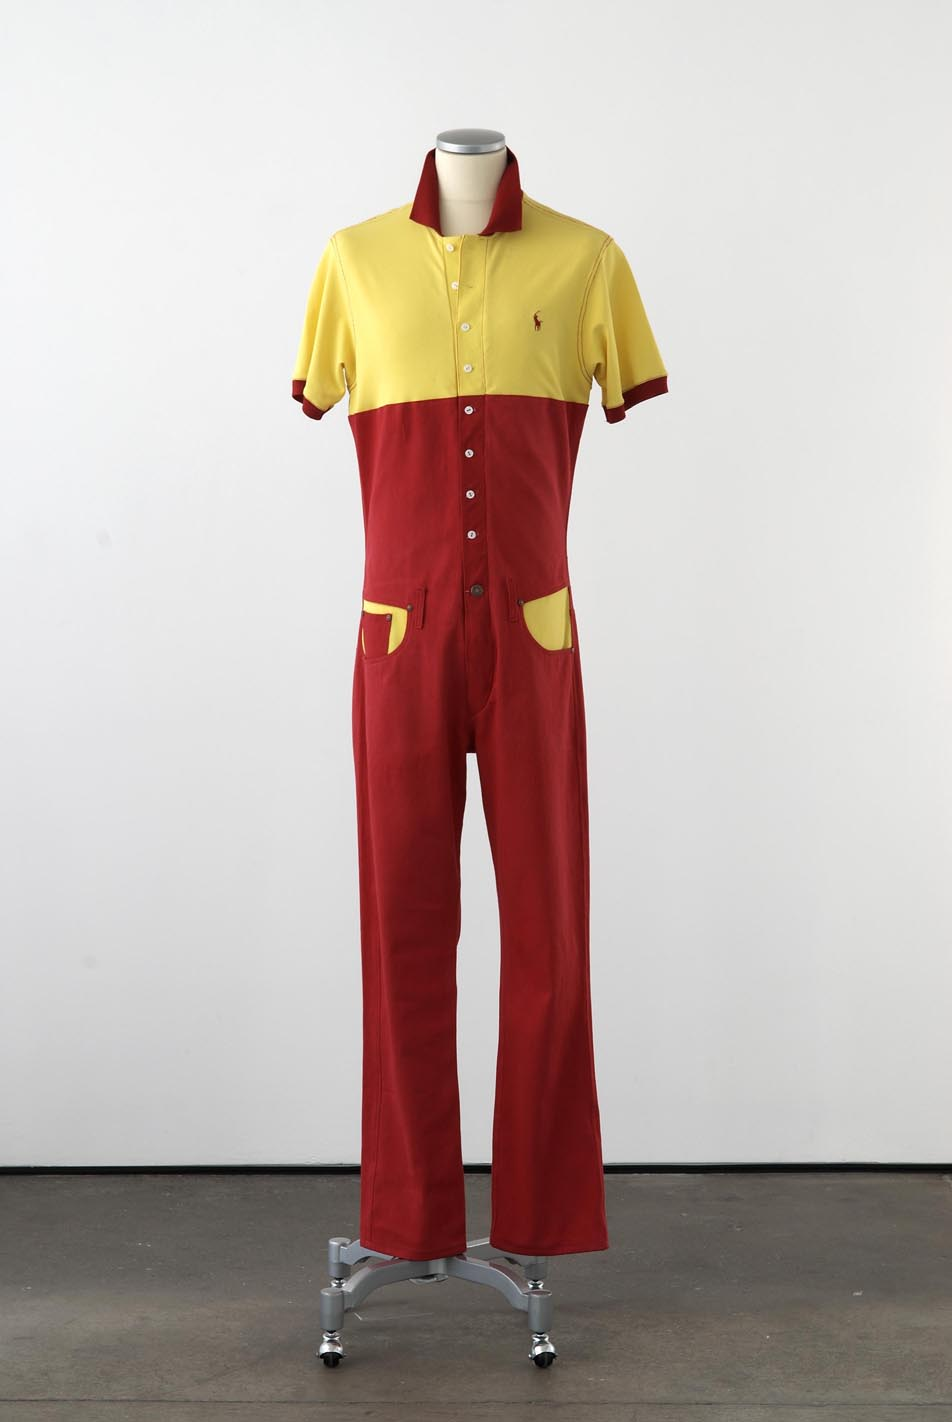 Matthew Darbyshire Standardised Production Clothing, Version 2 2009 Red denim, yellow airtex & fittings on mannequin 185 x 45 x 34 cm